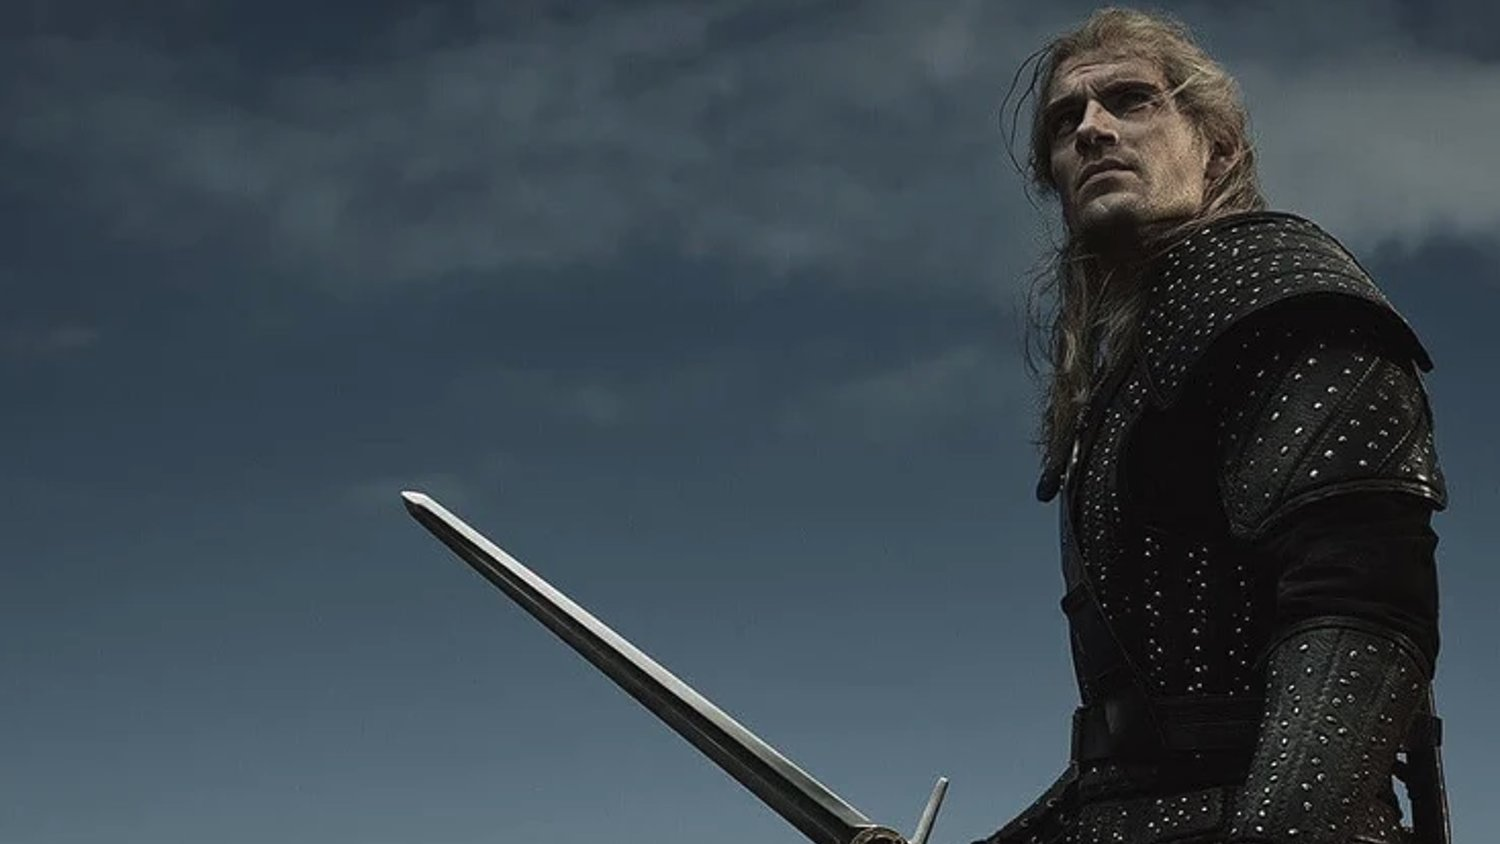 New Image From THE WITCHER Shows Henry Cavill Looking Like a Badass as Geralt